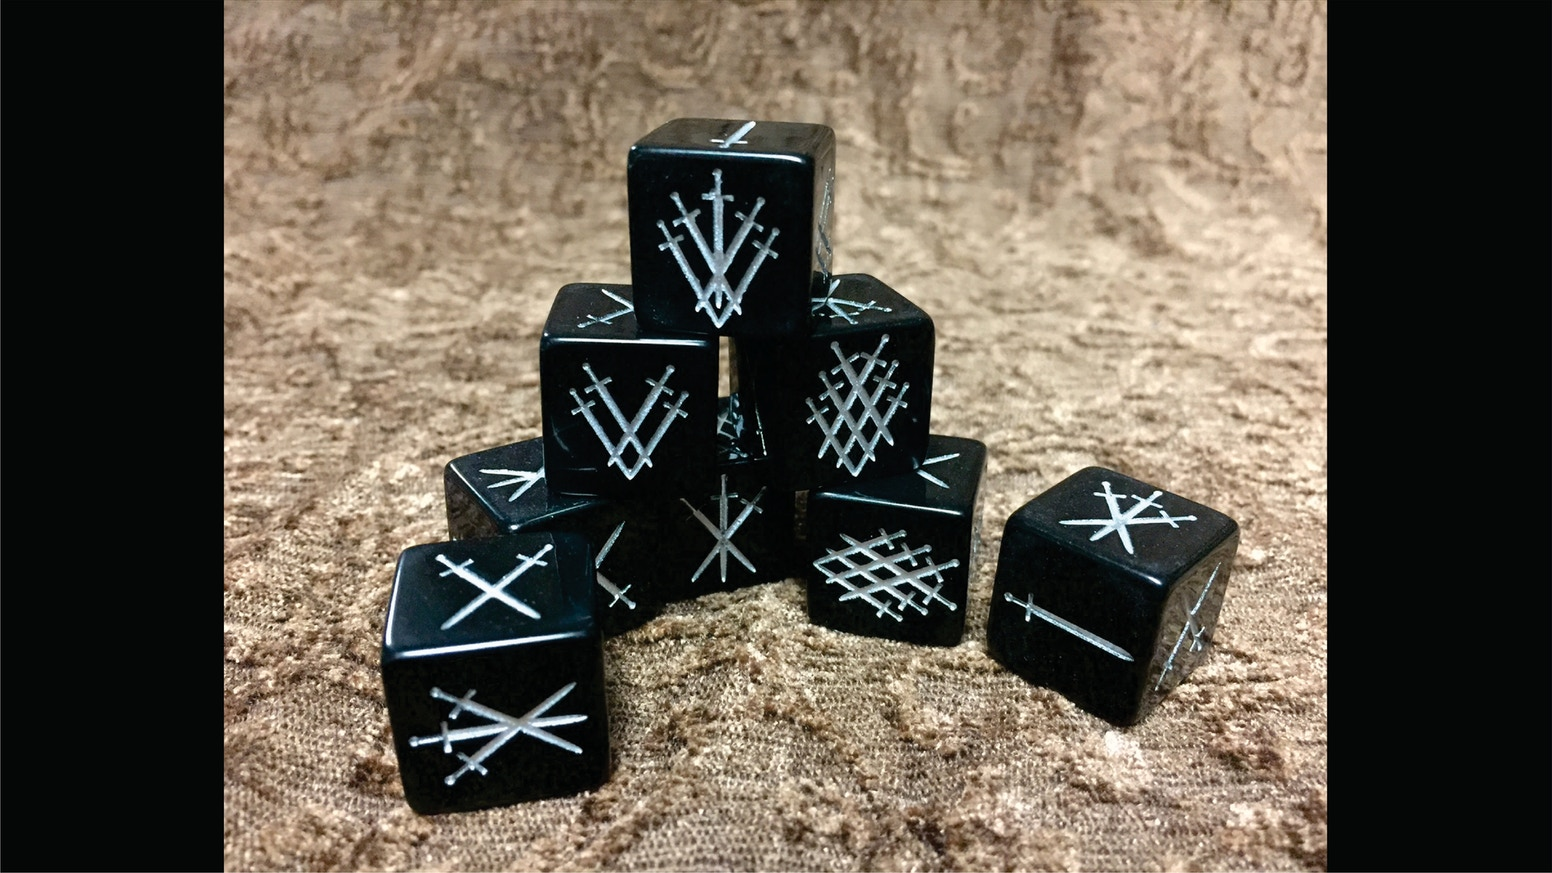 Whoso pulleth out these dice from this dice bag is rightwise king born of all England! These d6s are 19mm and full of Arthurian theme!